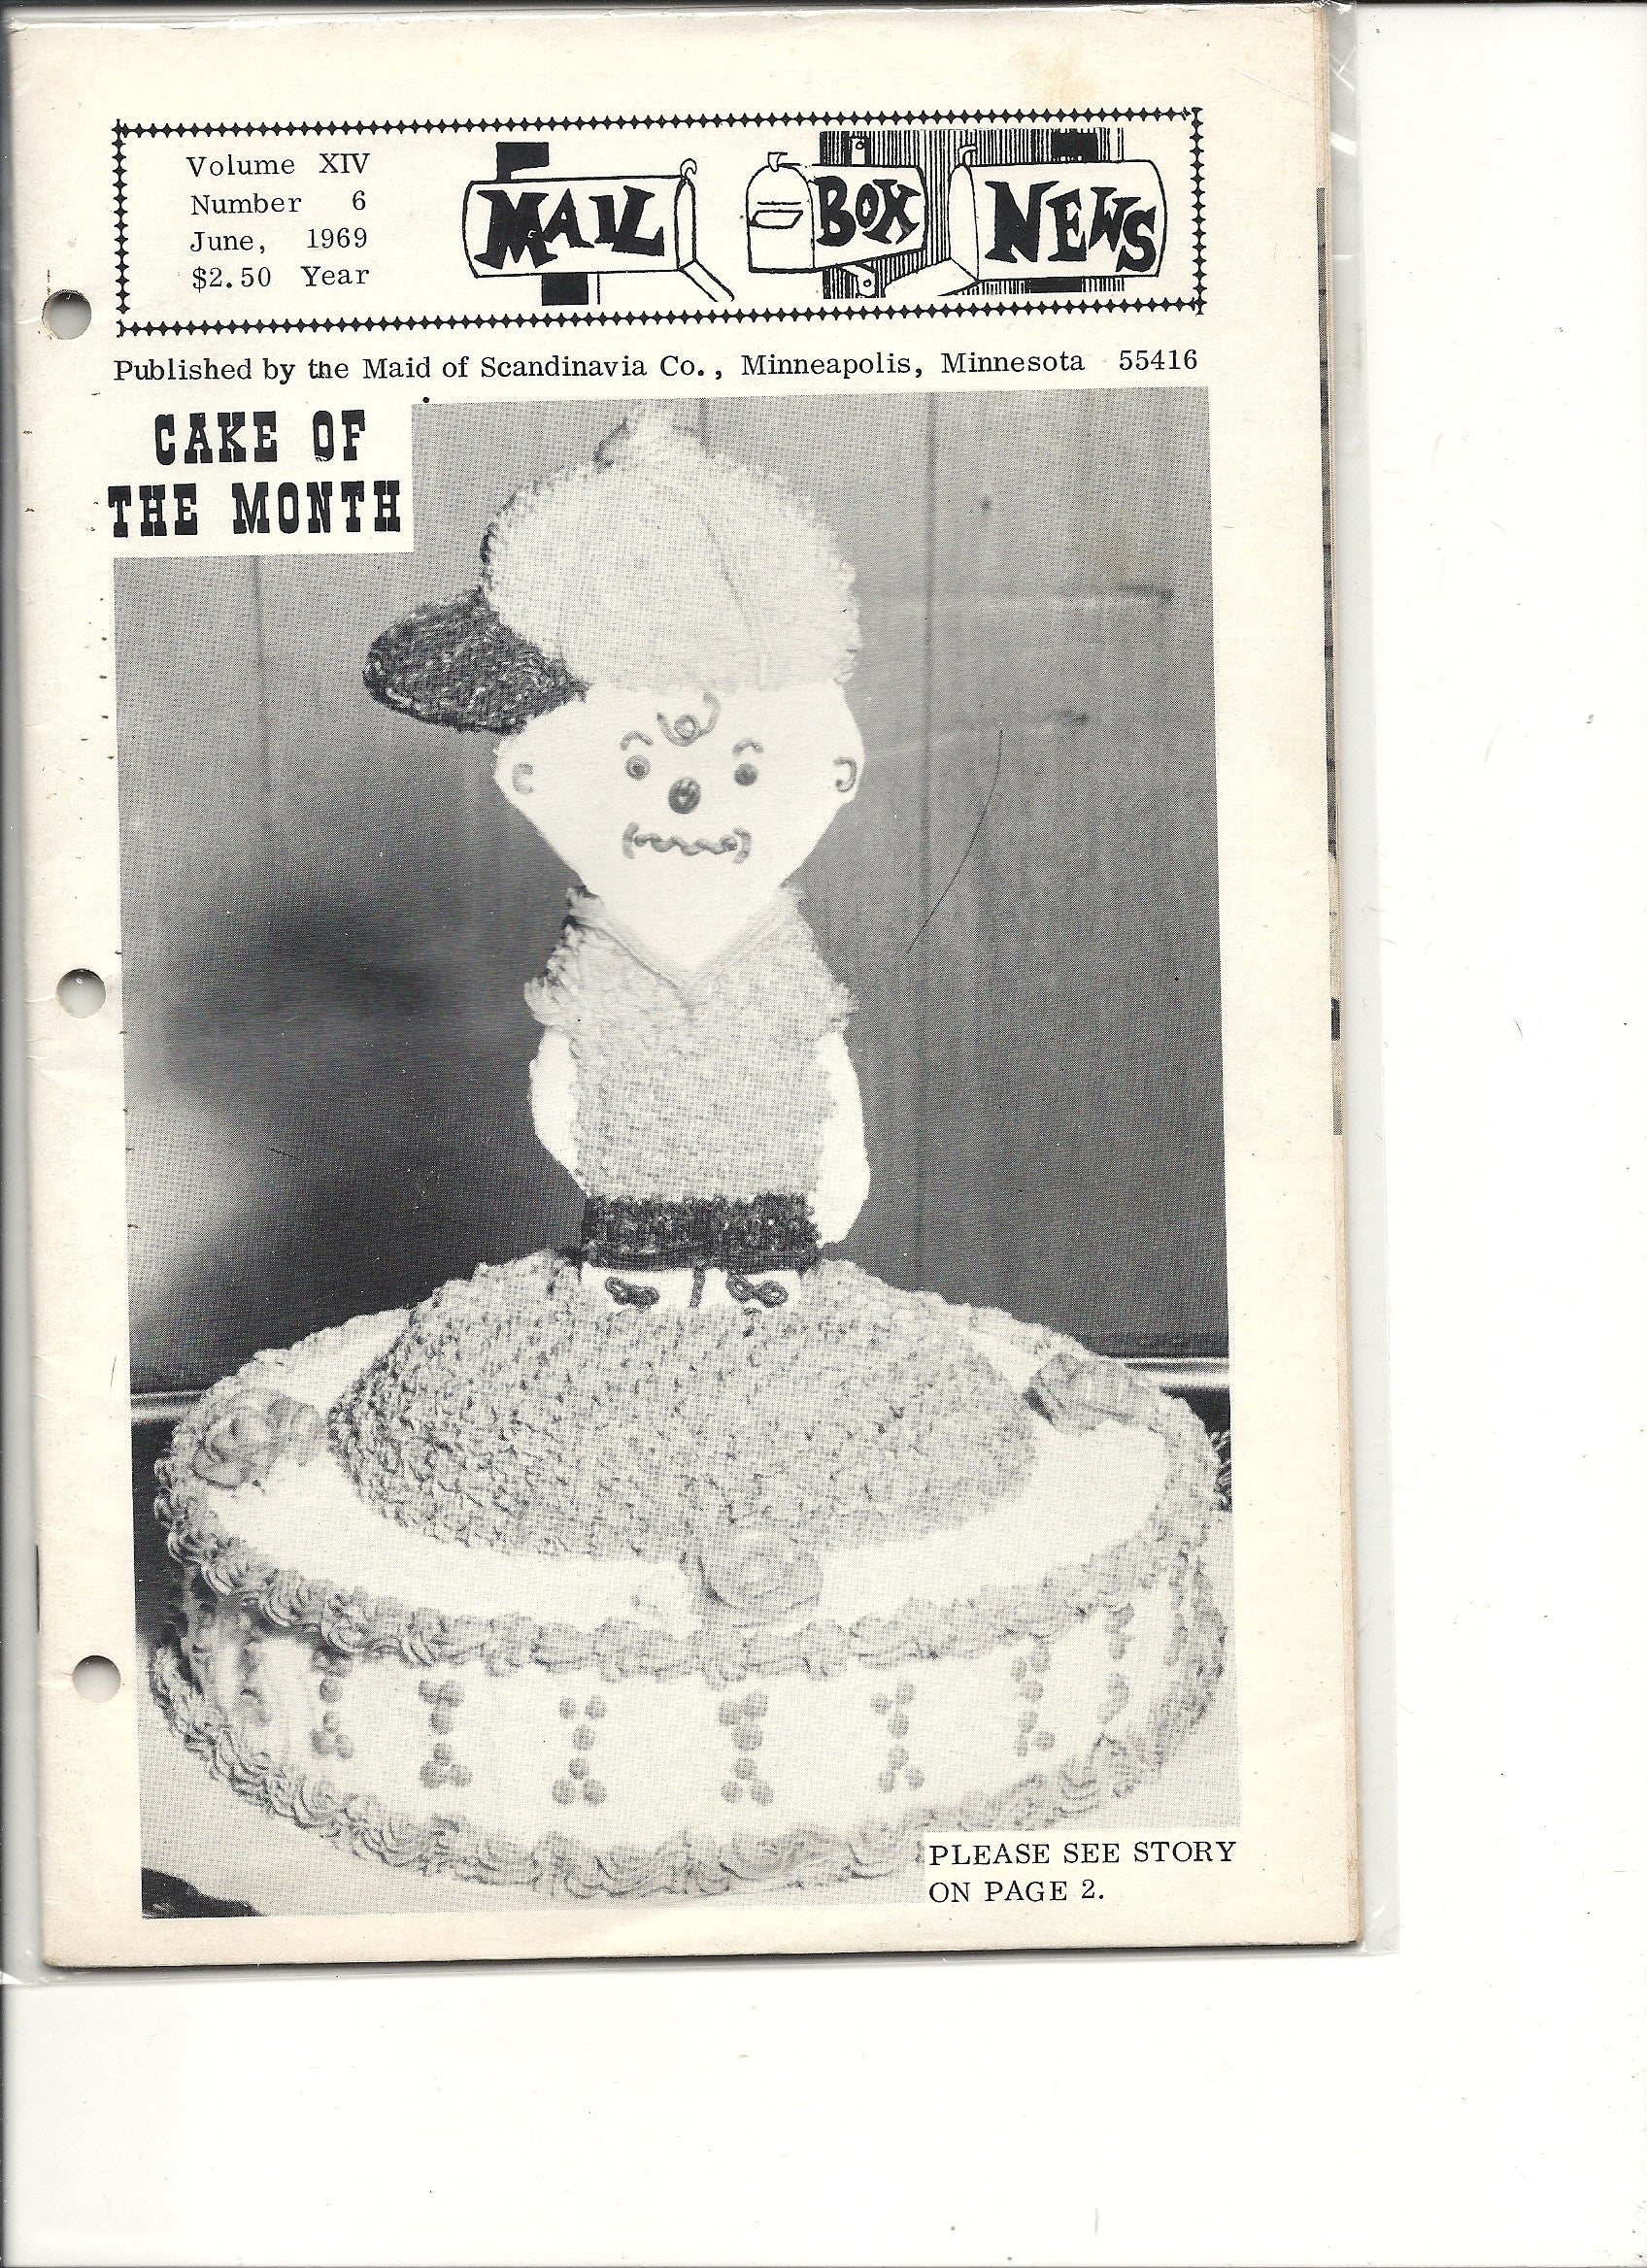 06 00 1969 Mail Box News Cake of the Month